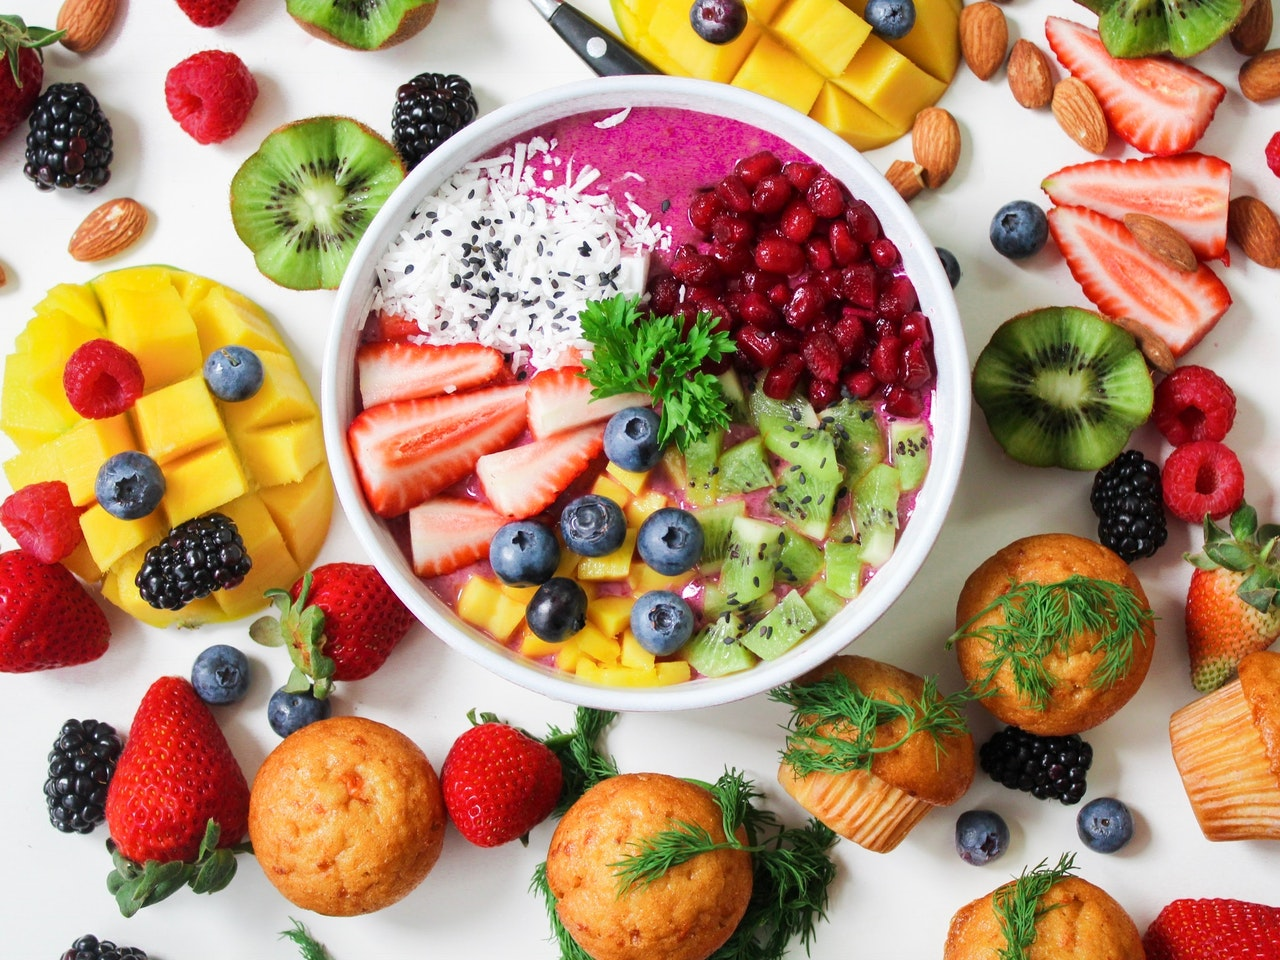 An overhead view of a bowl full of colorful fruit such as strawberries, dragon fruit, pomegranate seeds, kiwi, blueberries, and mango. These same fruits, along with more food like muffins and almonds, surround the bowl.